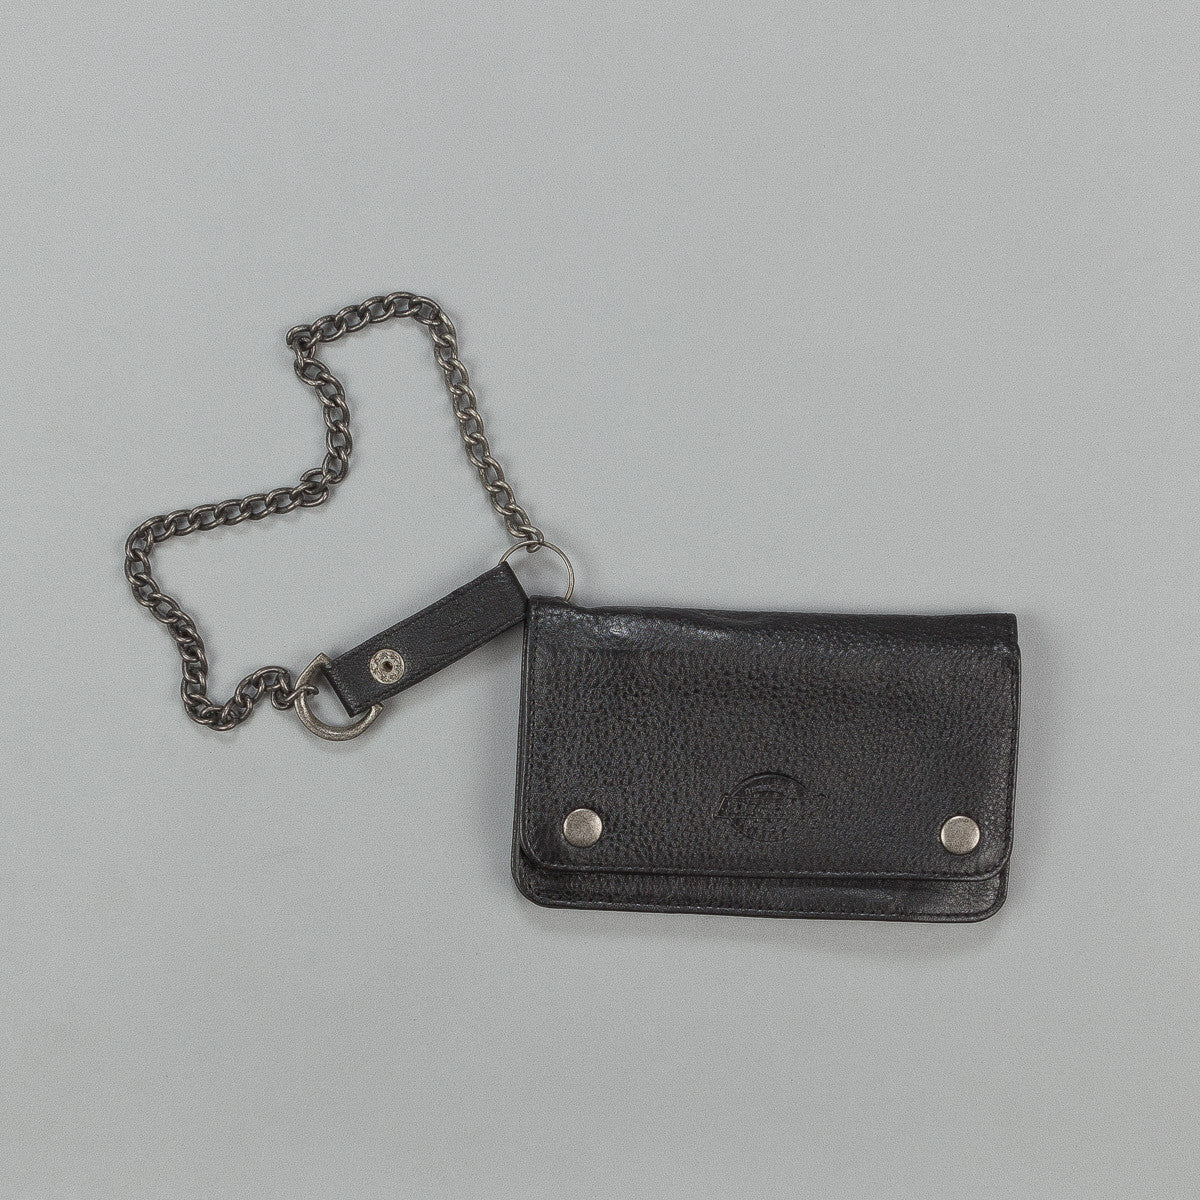 Dickies Balboa Island Wallet - Black